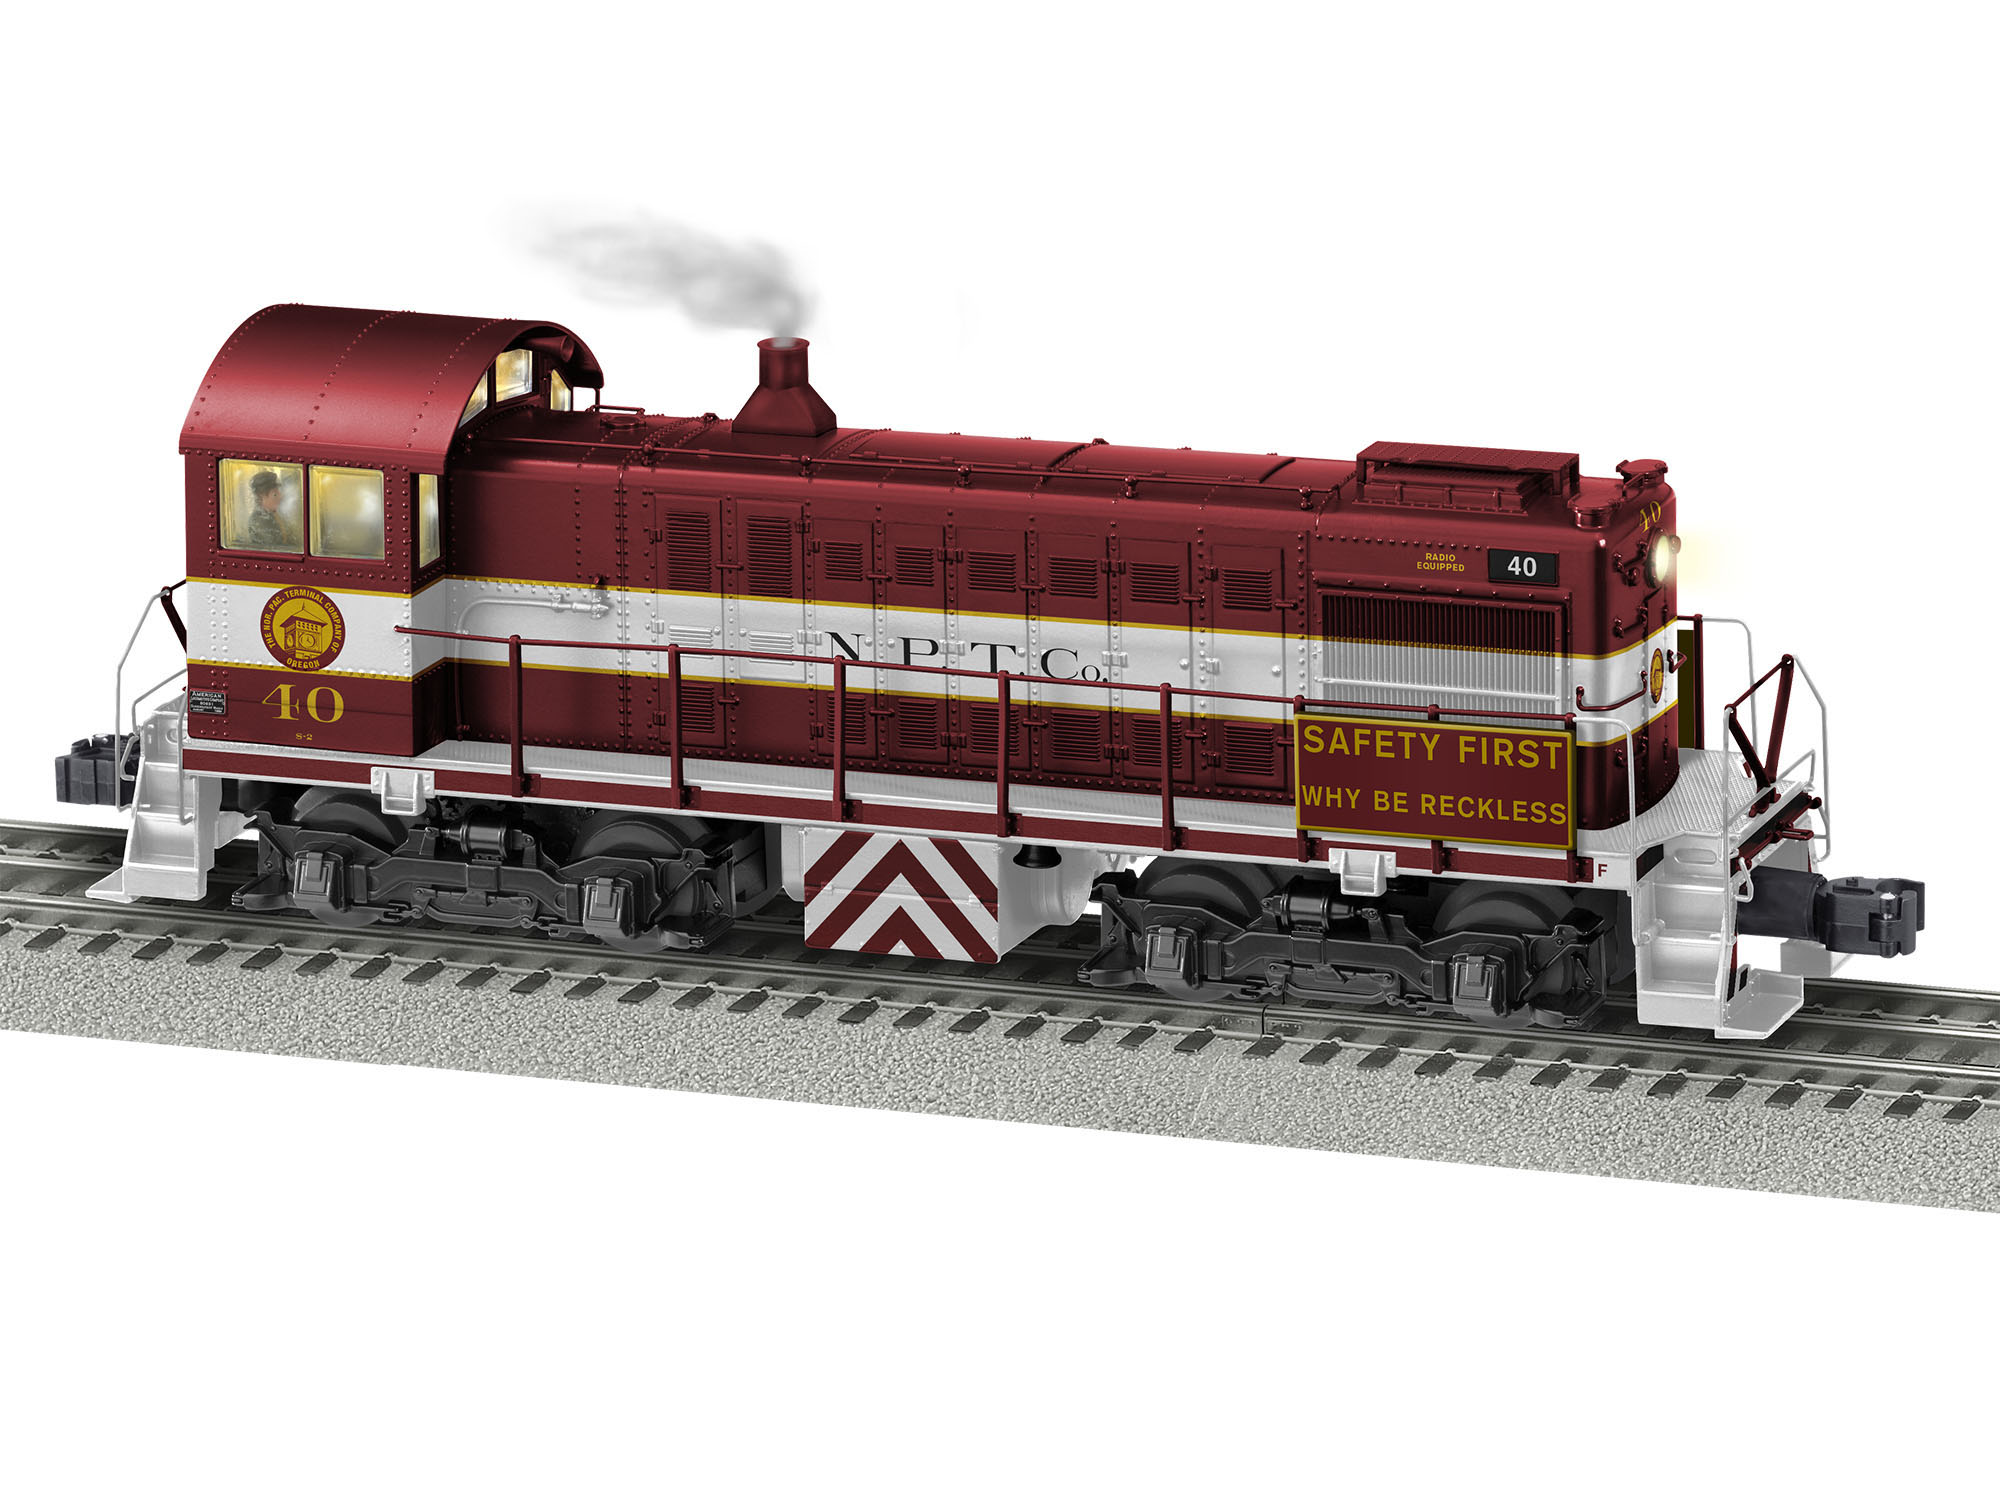 Lionel 2033140 O Alco S2 3-Rail Legacy Sound and Control Northern Pacific Terminal 40 434-2033140